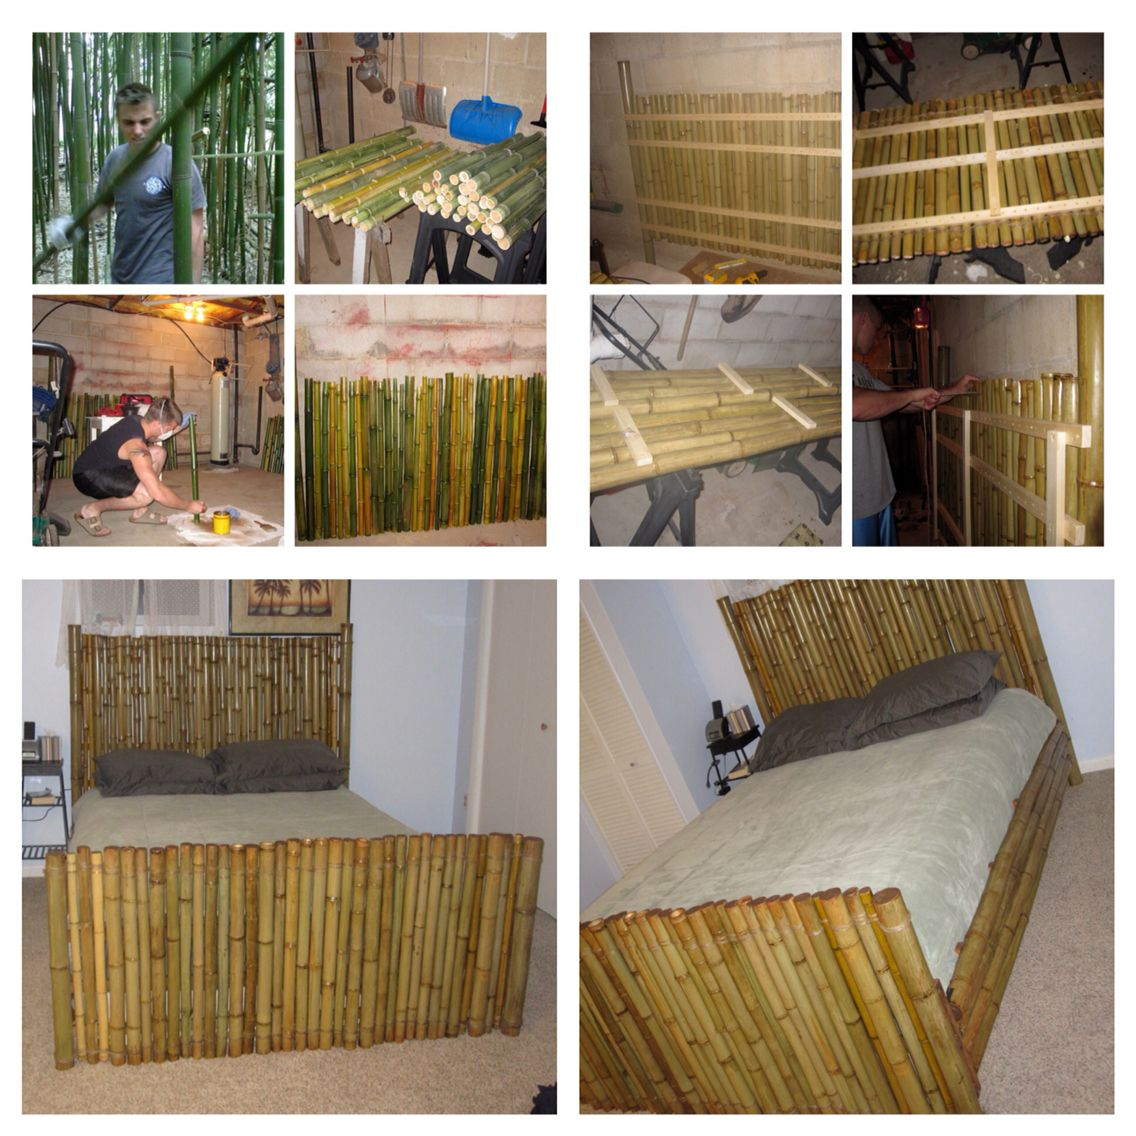 My Bamboo Bed Frame I Made Bed Bedframe Bamboo Bamboobedframe